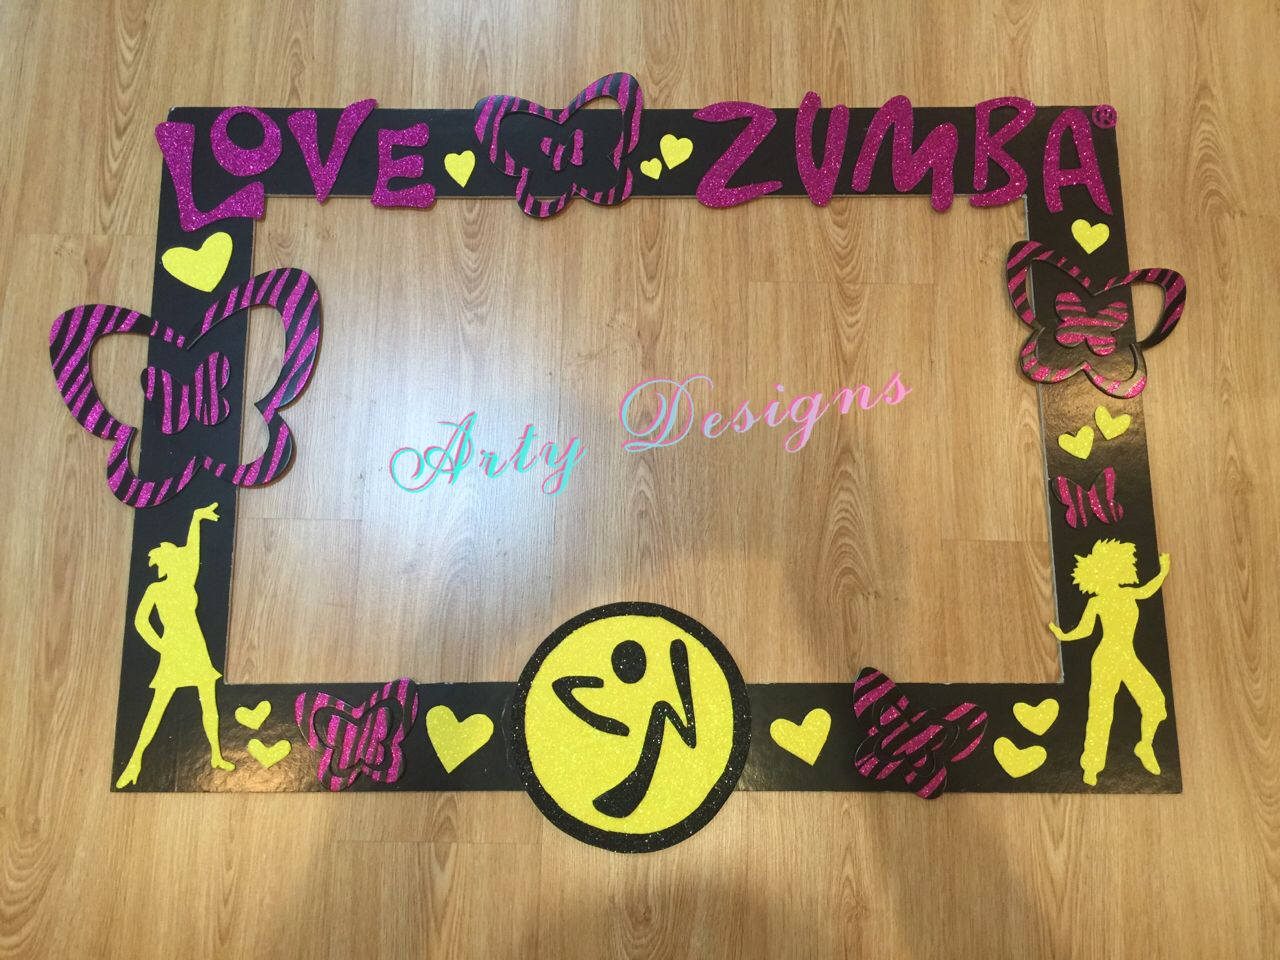 Zumba photo booth frame in 2019.